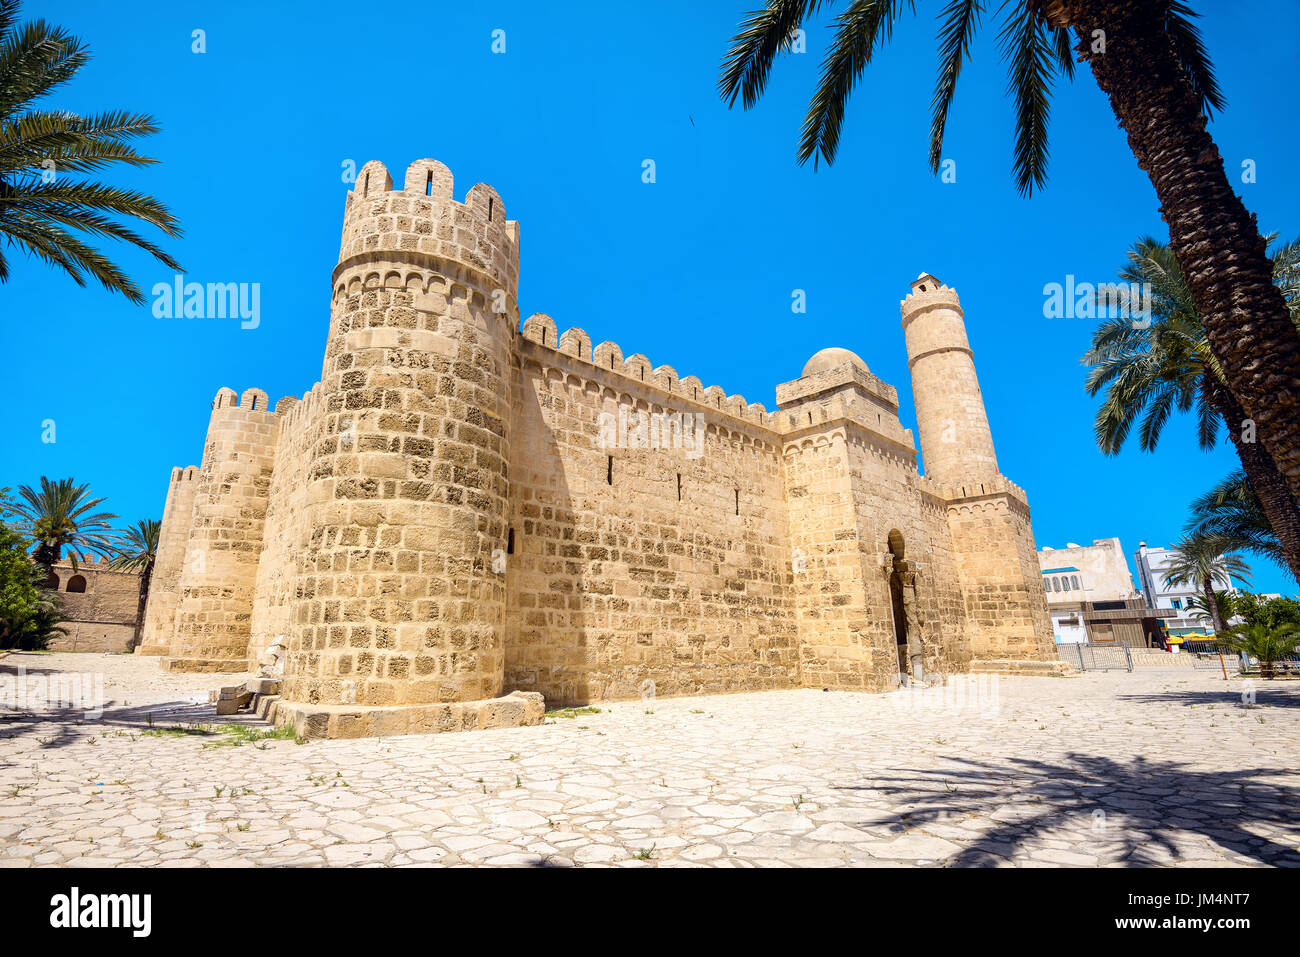 View of ancient fortress in Sousse. Tunisia, North Africa - Stock Image